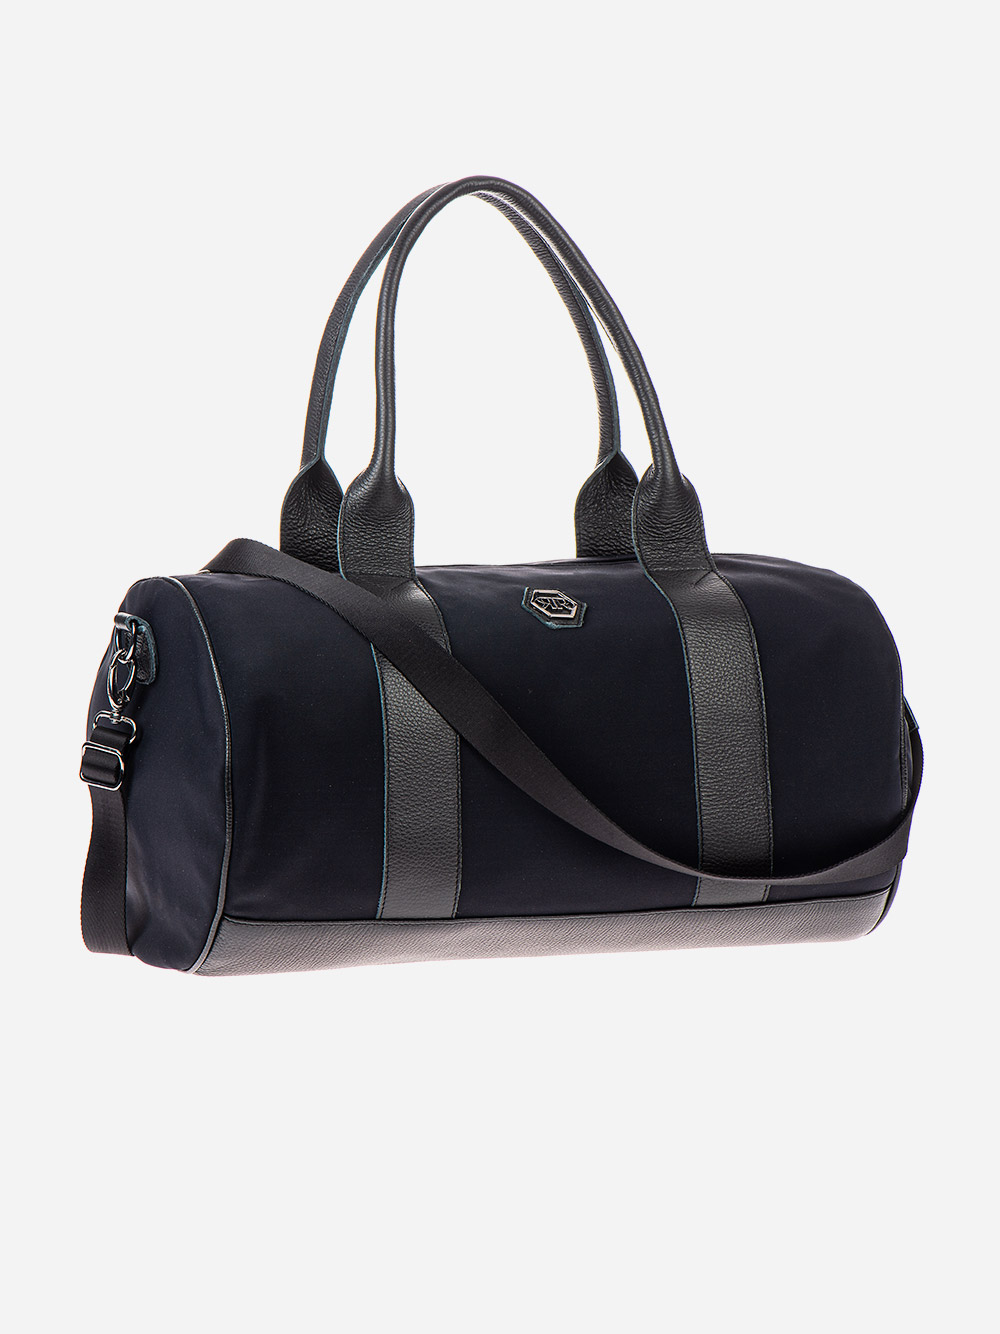 Black Nylon Sports Bag